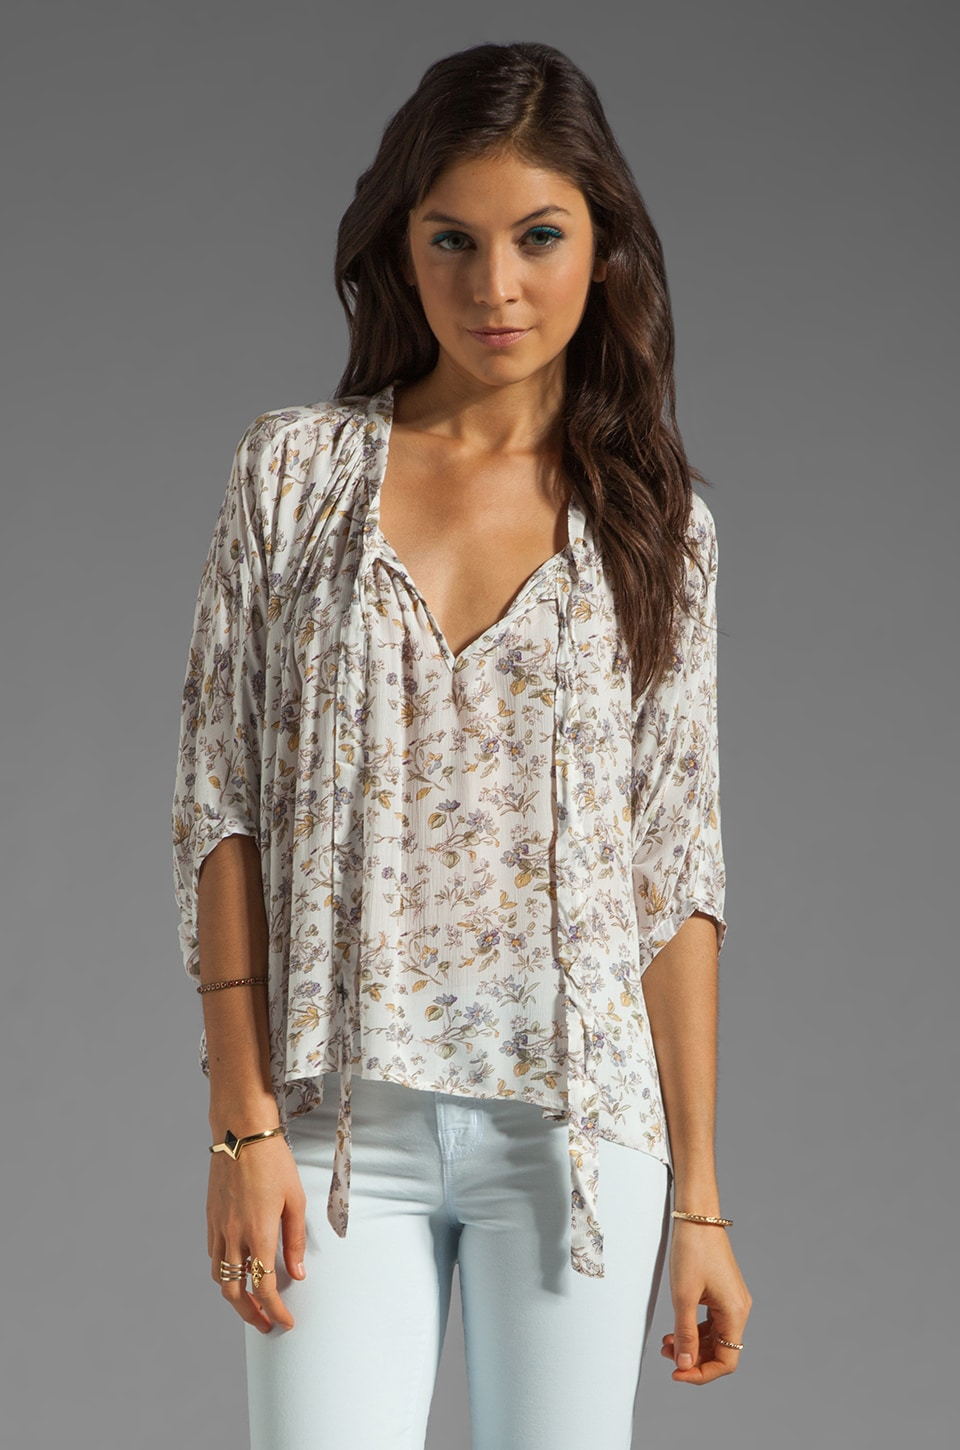 Lucca Couture Oversized Floral Top in White Floral